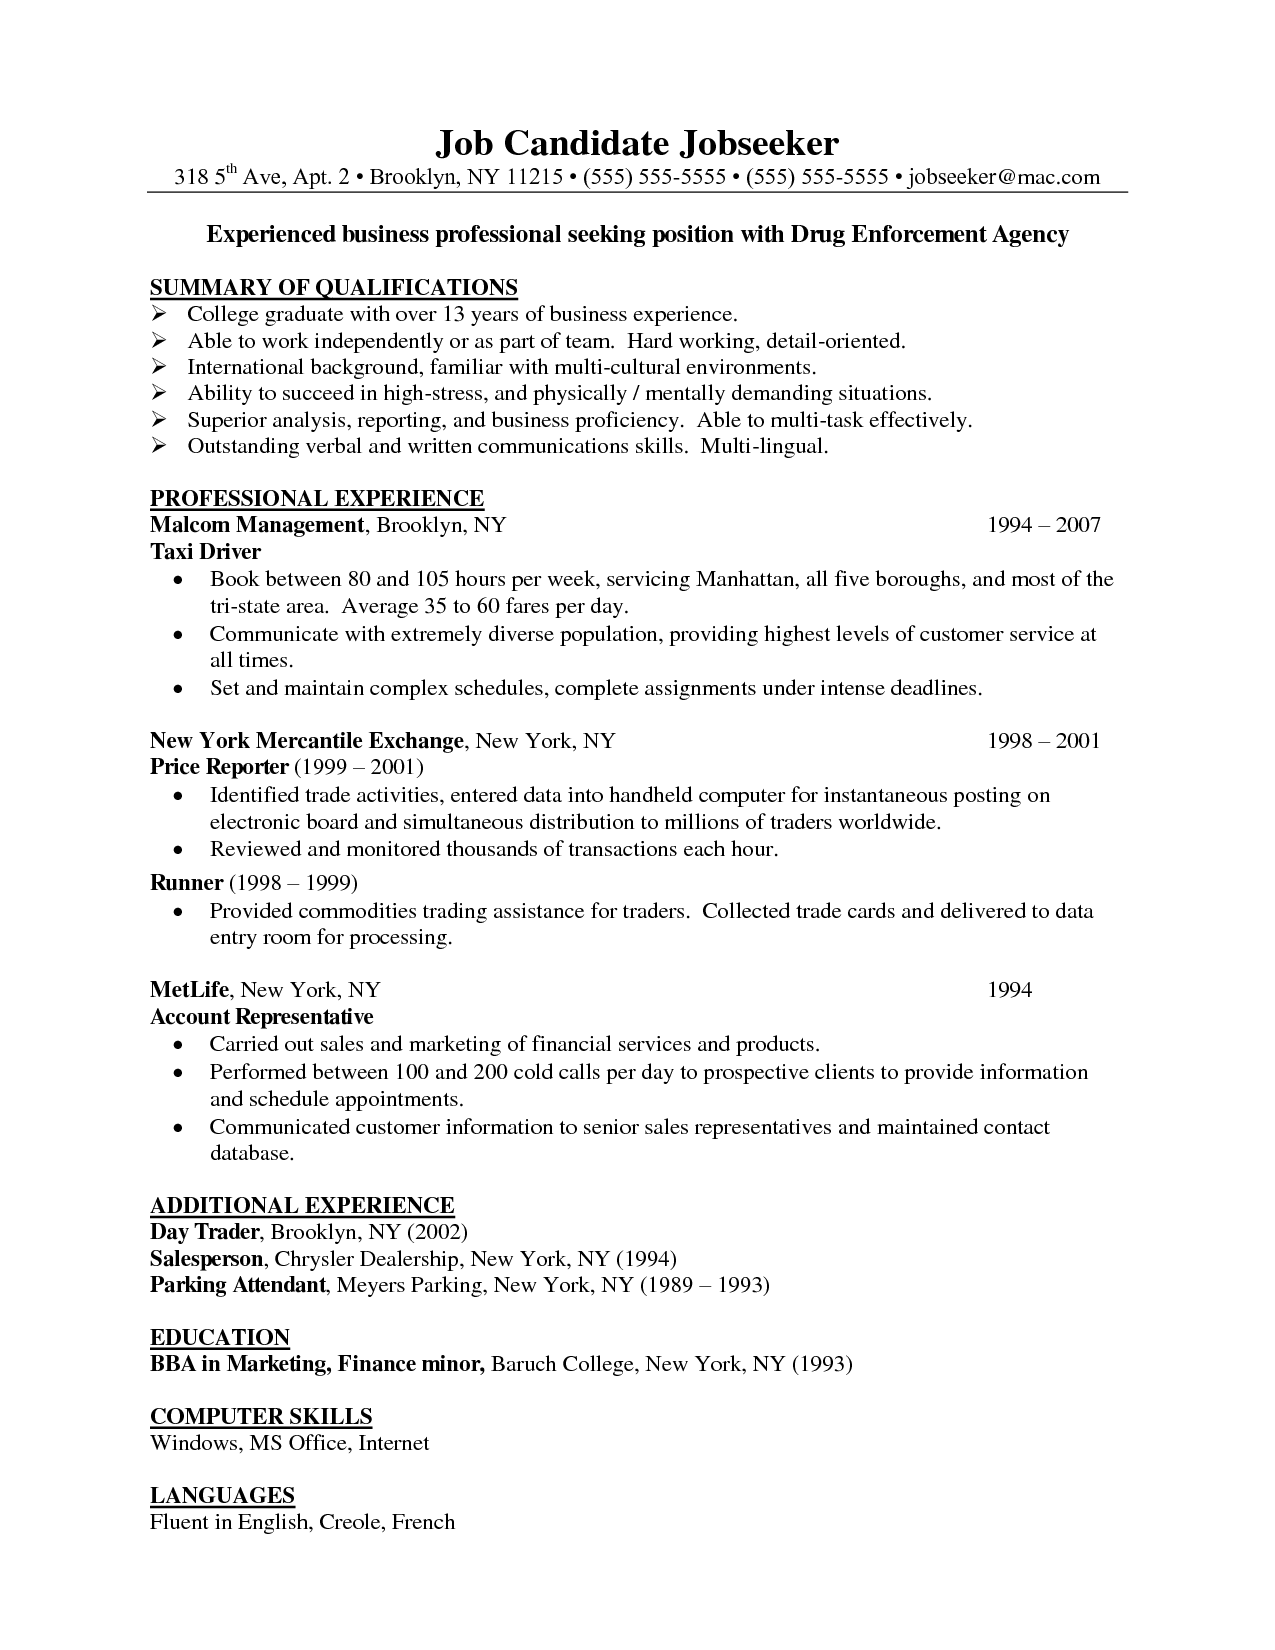 free business resume templates - Professional Business Resume Template